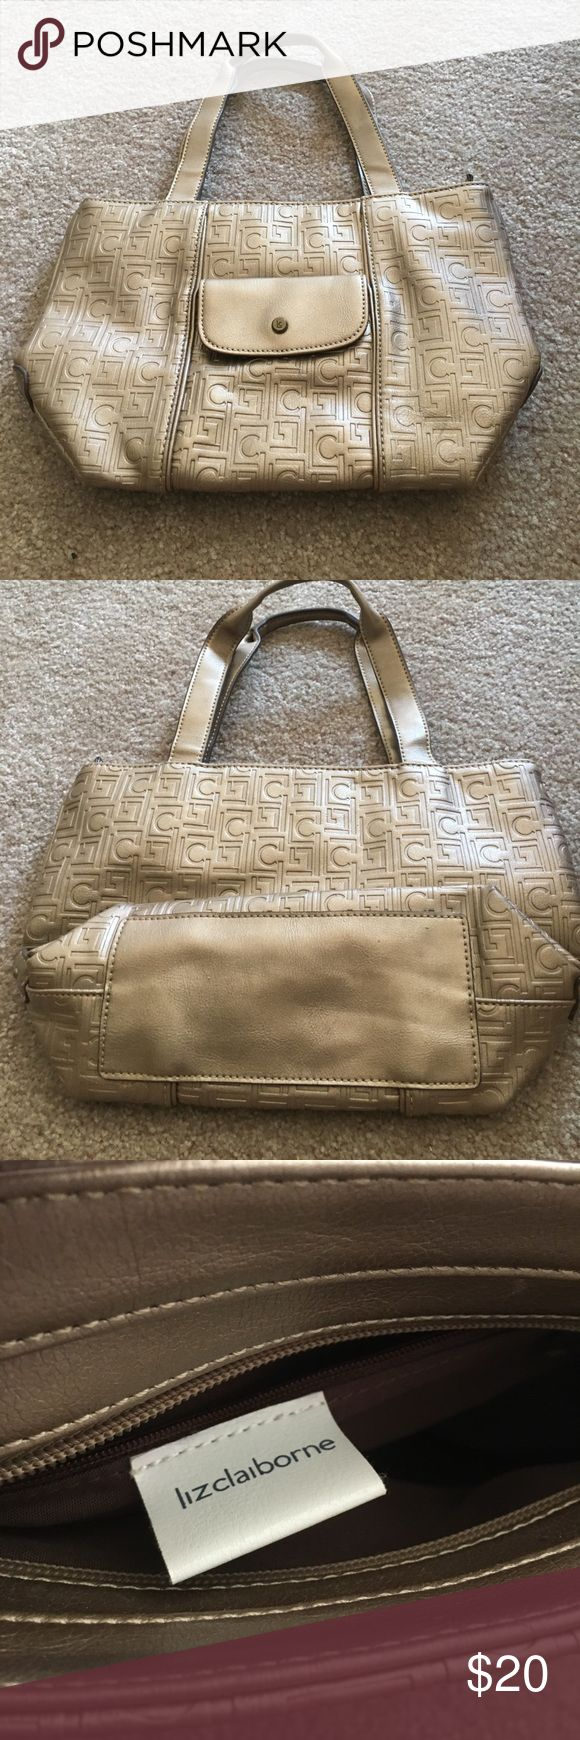 Liz Claiborne gold tote bag like new Like new! No signs of wear or any stress marks. Zippers work great! About medium size. Roughly 4 inches tall. 7 inches wide. Only used a handful of times. Liz Claiborne Bags Shoulder Bags